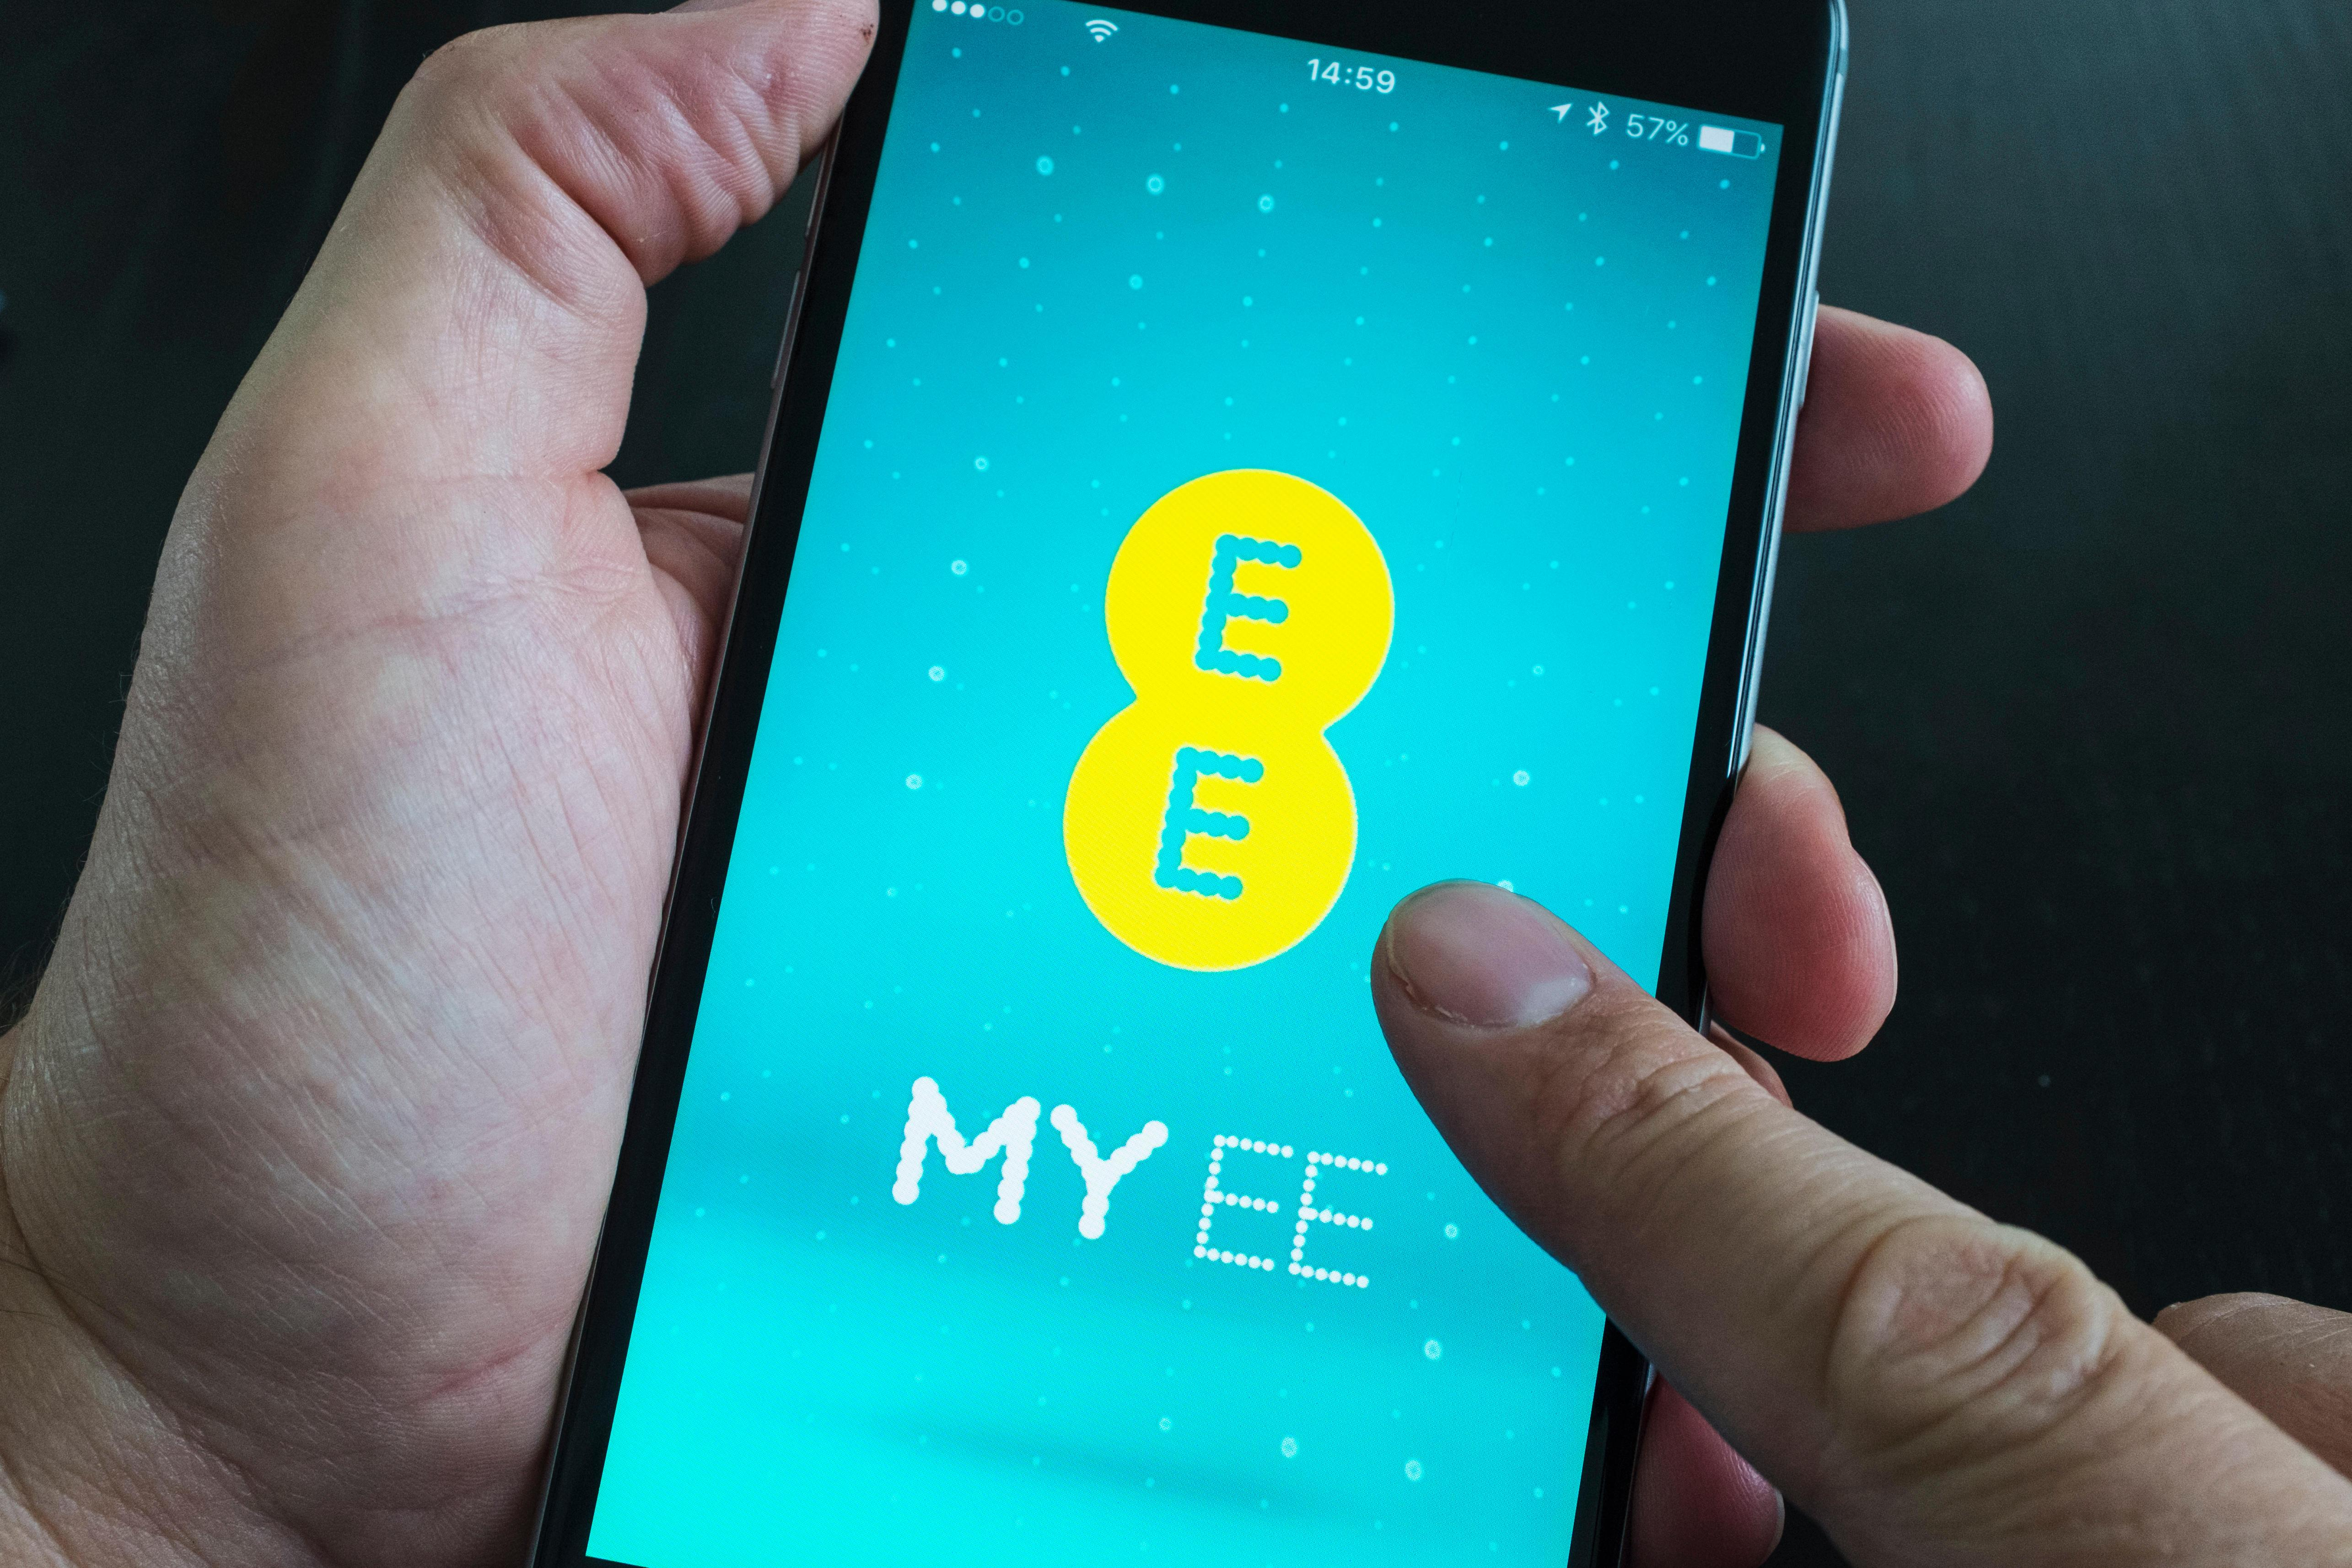 EE customers will want to check the service in their area if they're experiencing issues